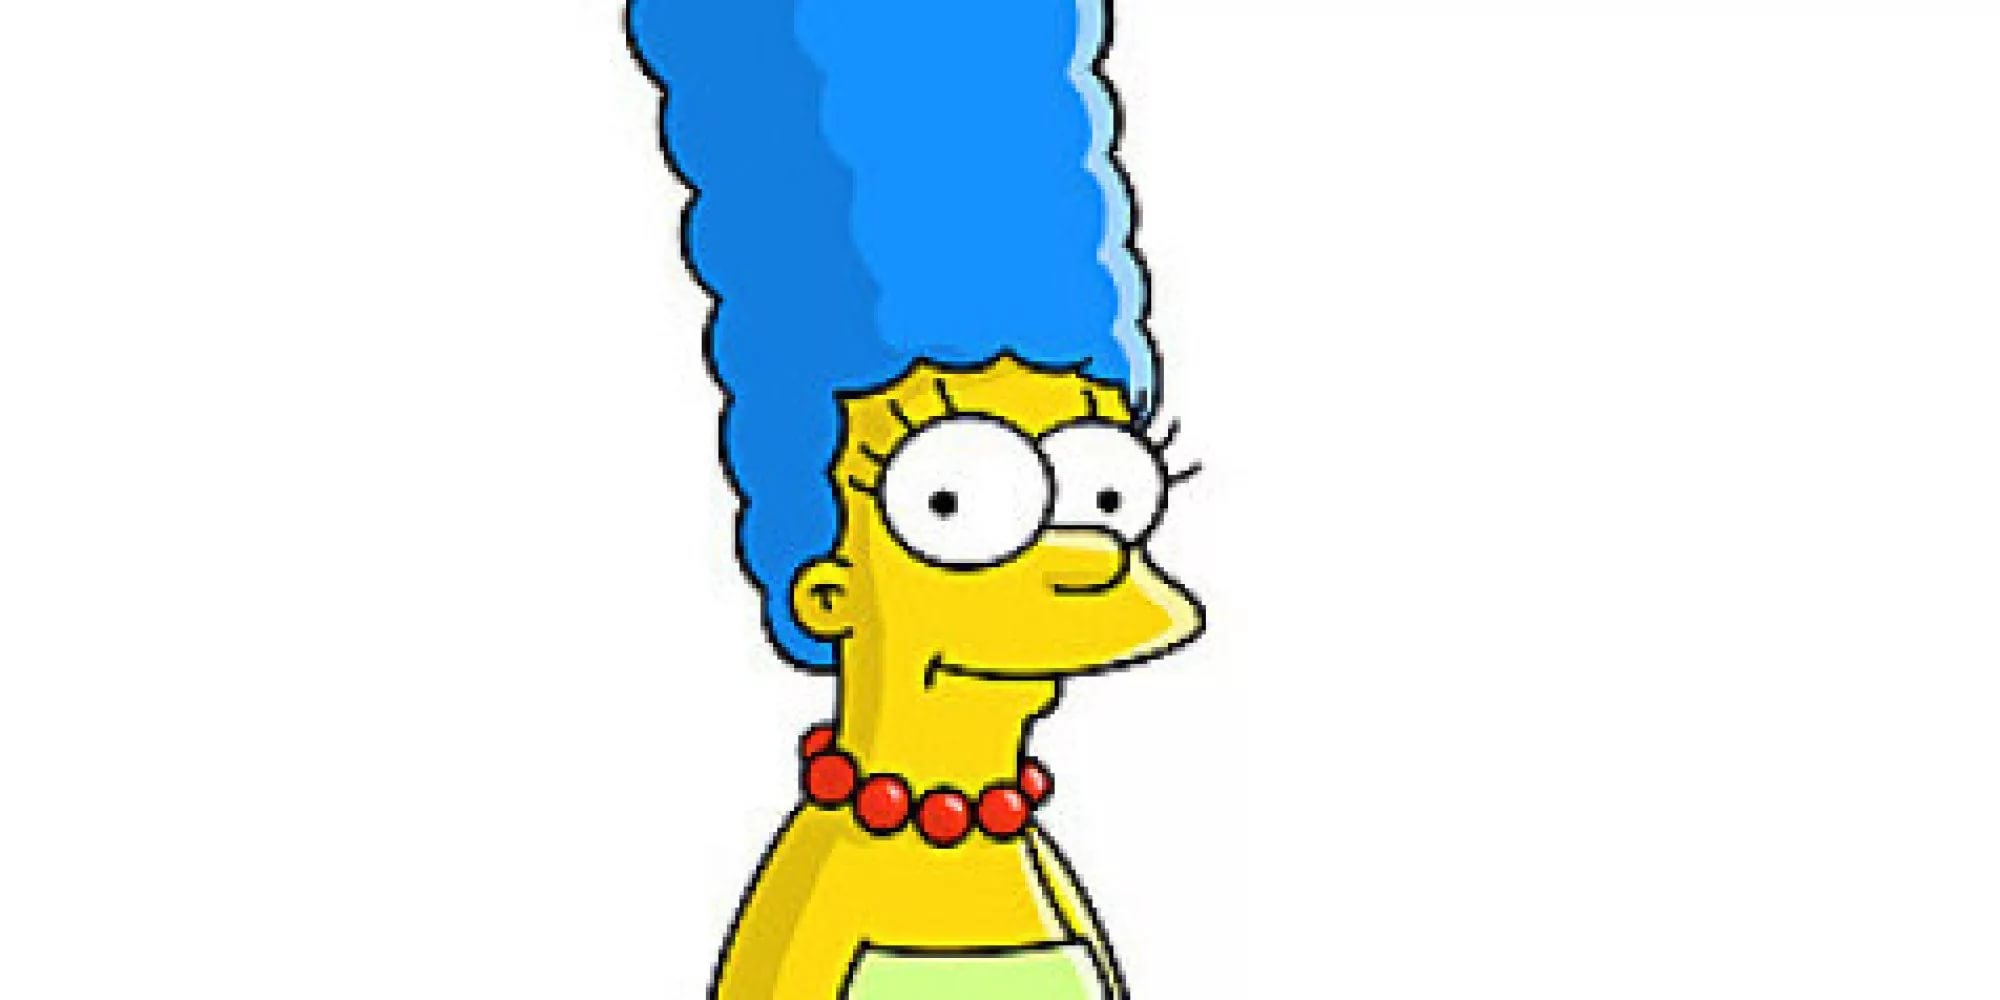 2000x1000 Marge Simpson Hd Wallpapers Free